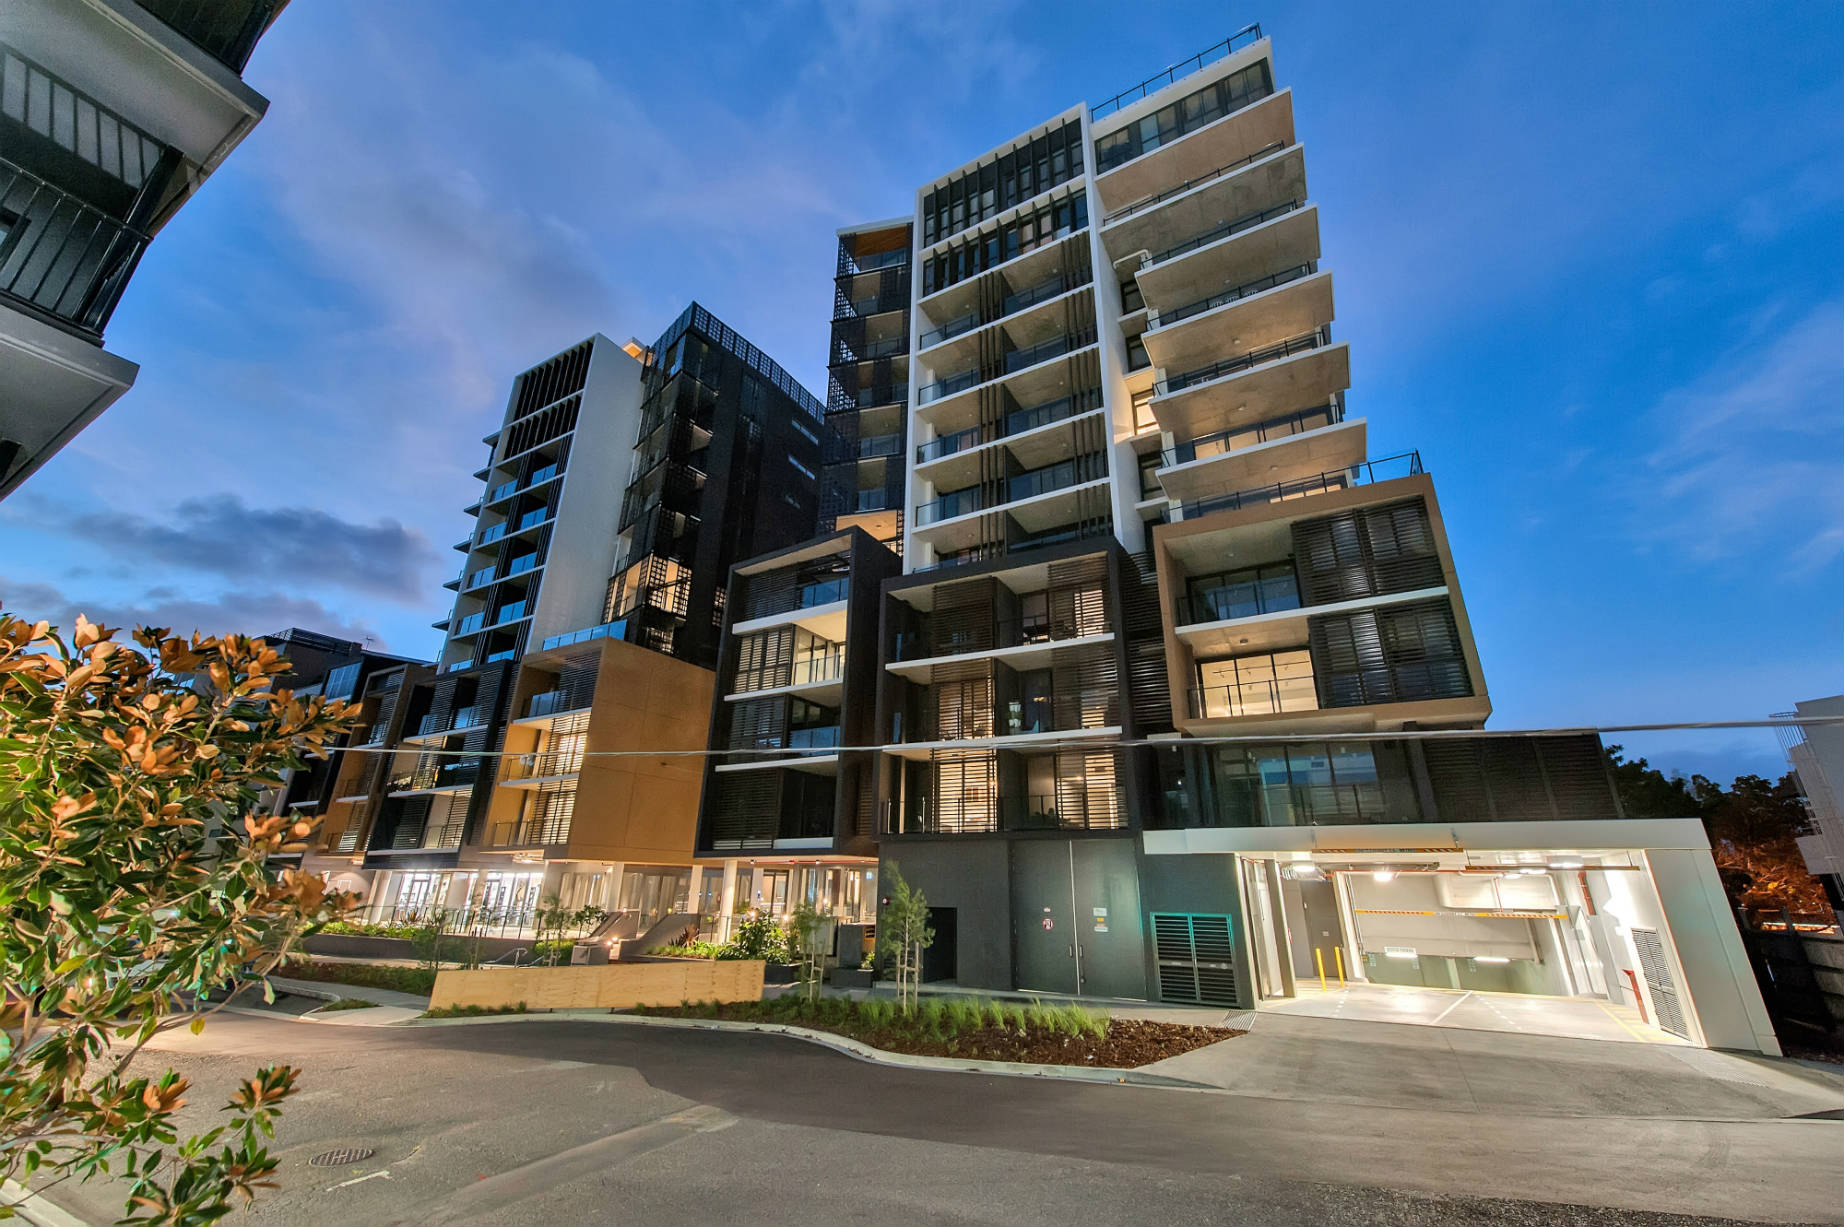 commercial building photographer Brisbane